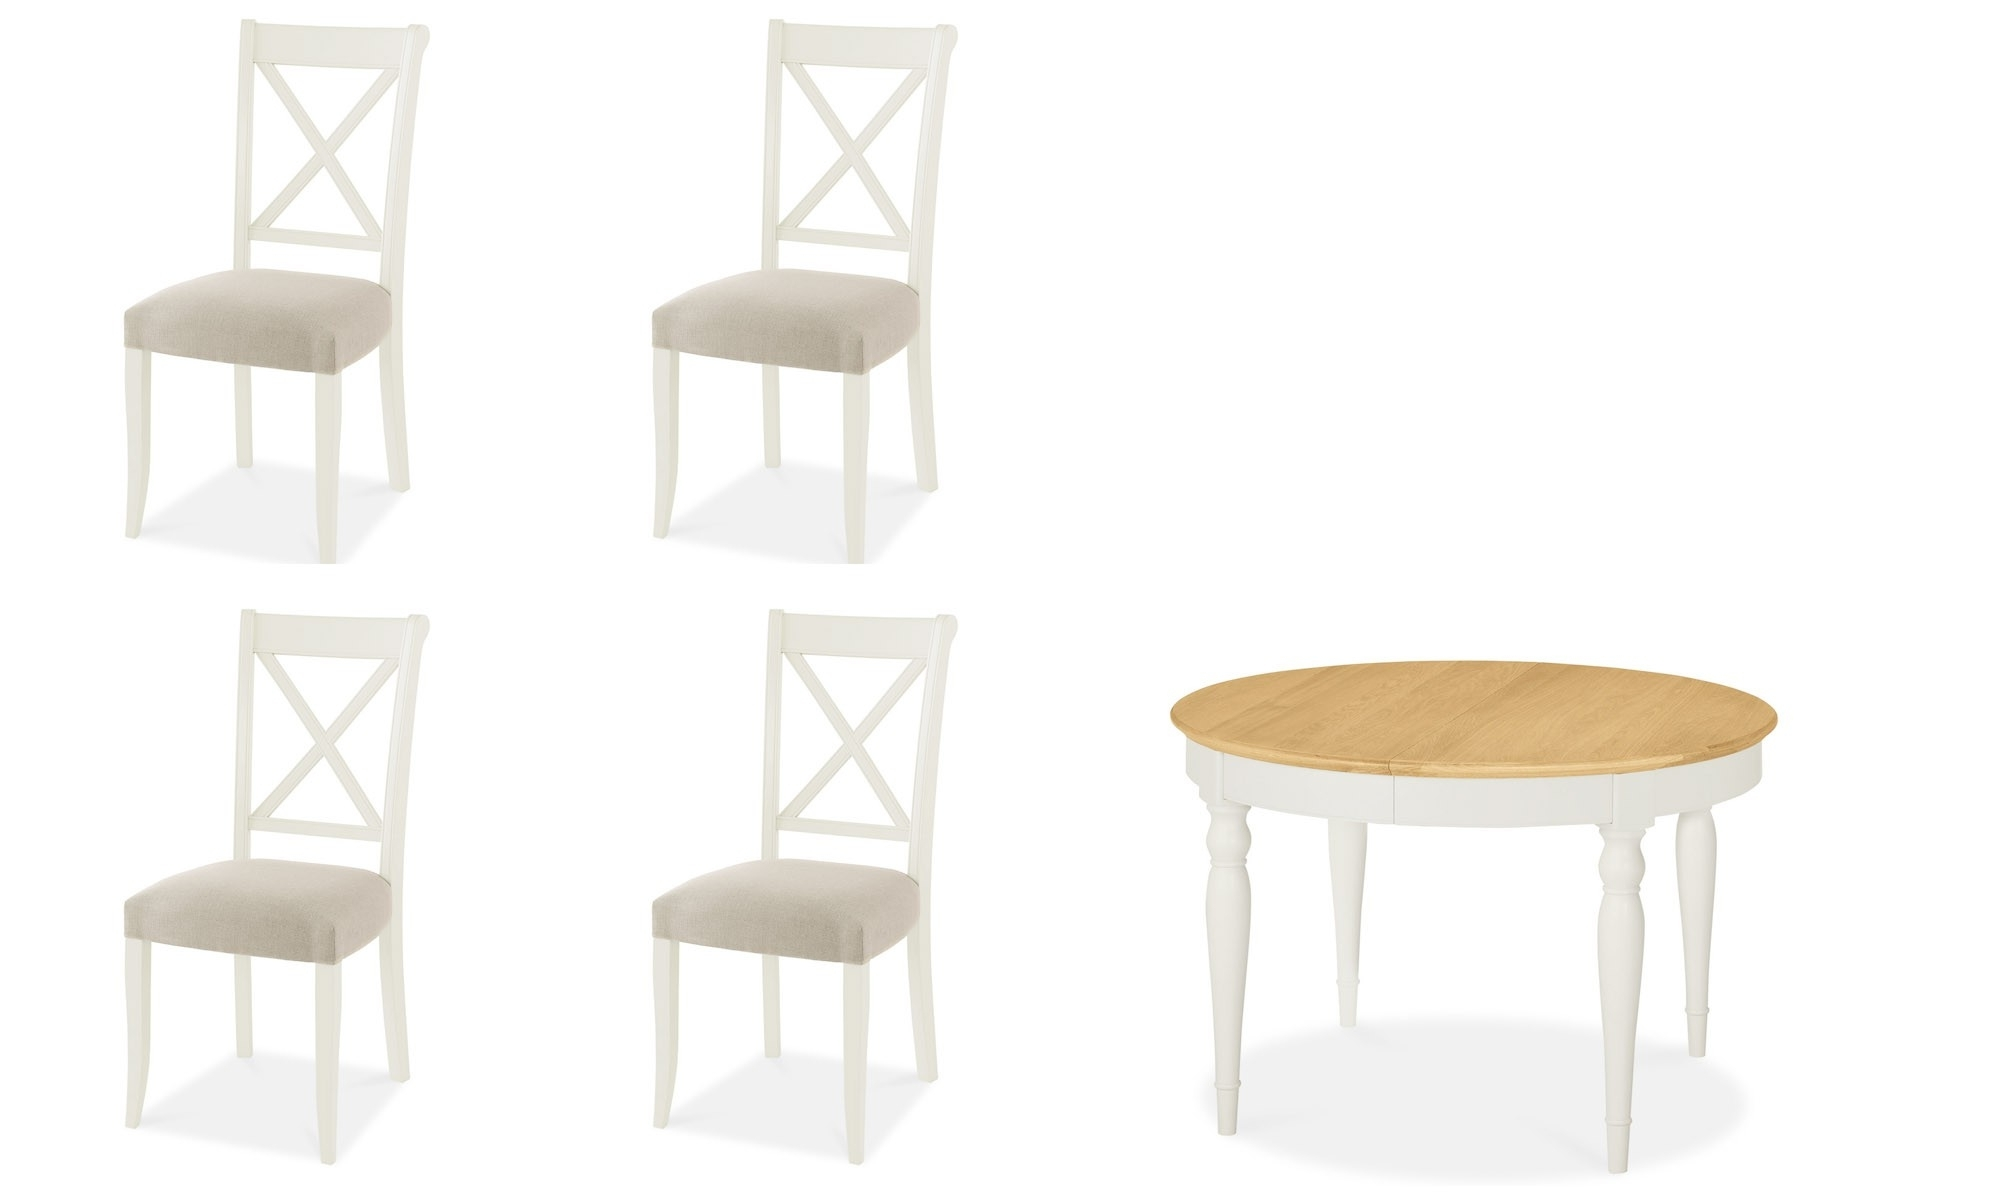 Famous Georgie – Round Extending Dining Table And Chairs In Cream – Oak Top In Extendable Dining Table And 4 Chairs (View 16 of 25)